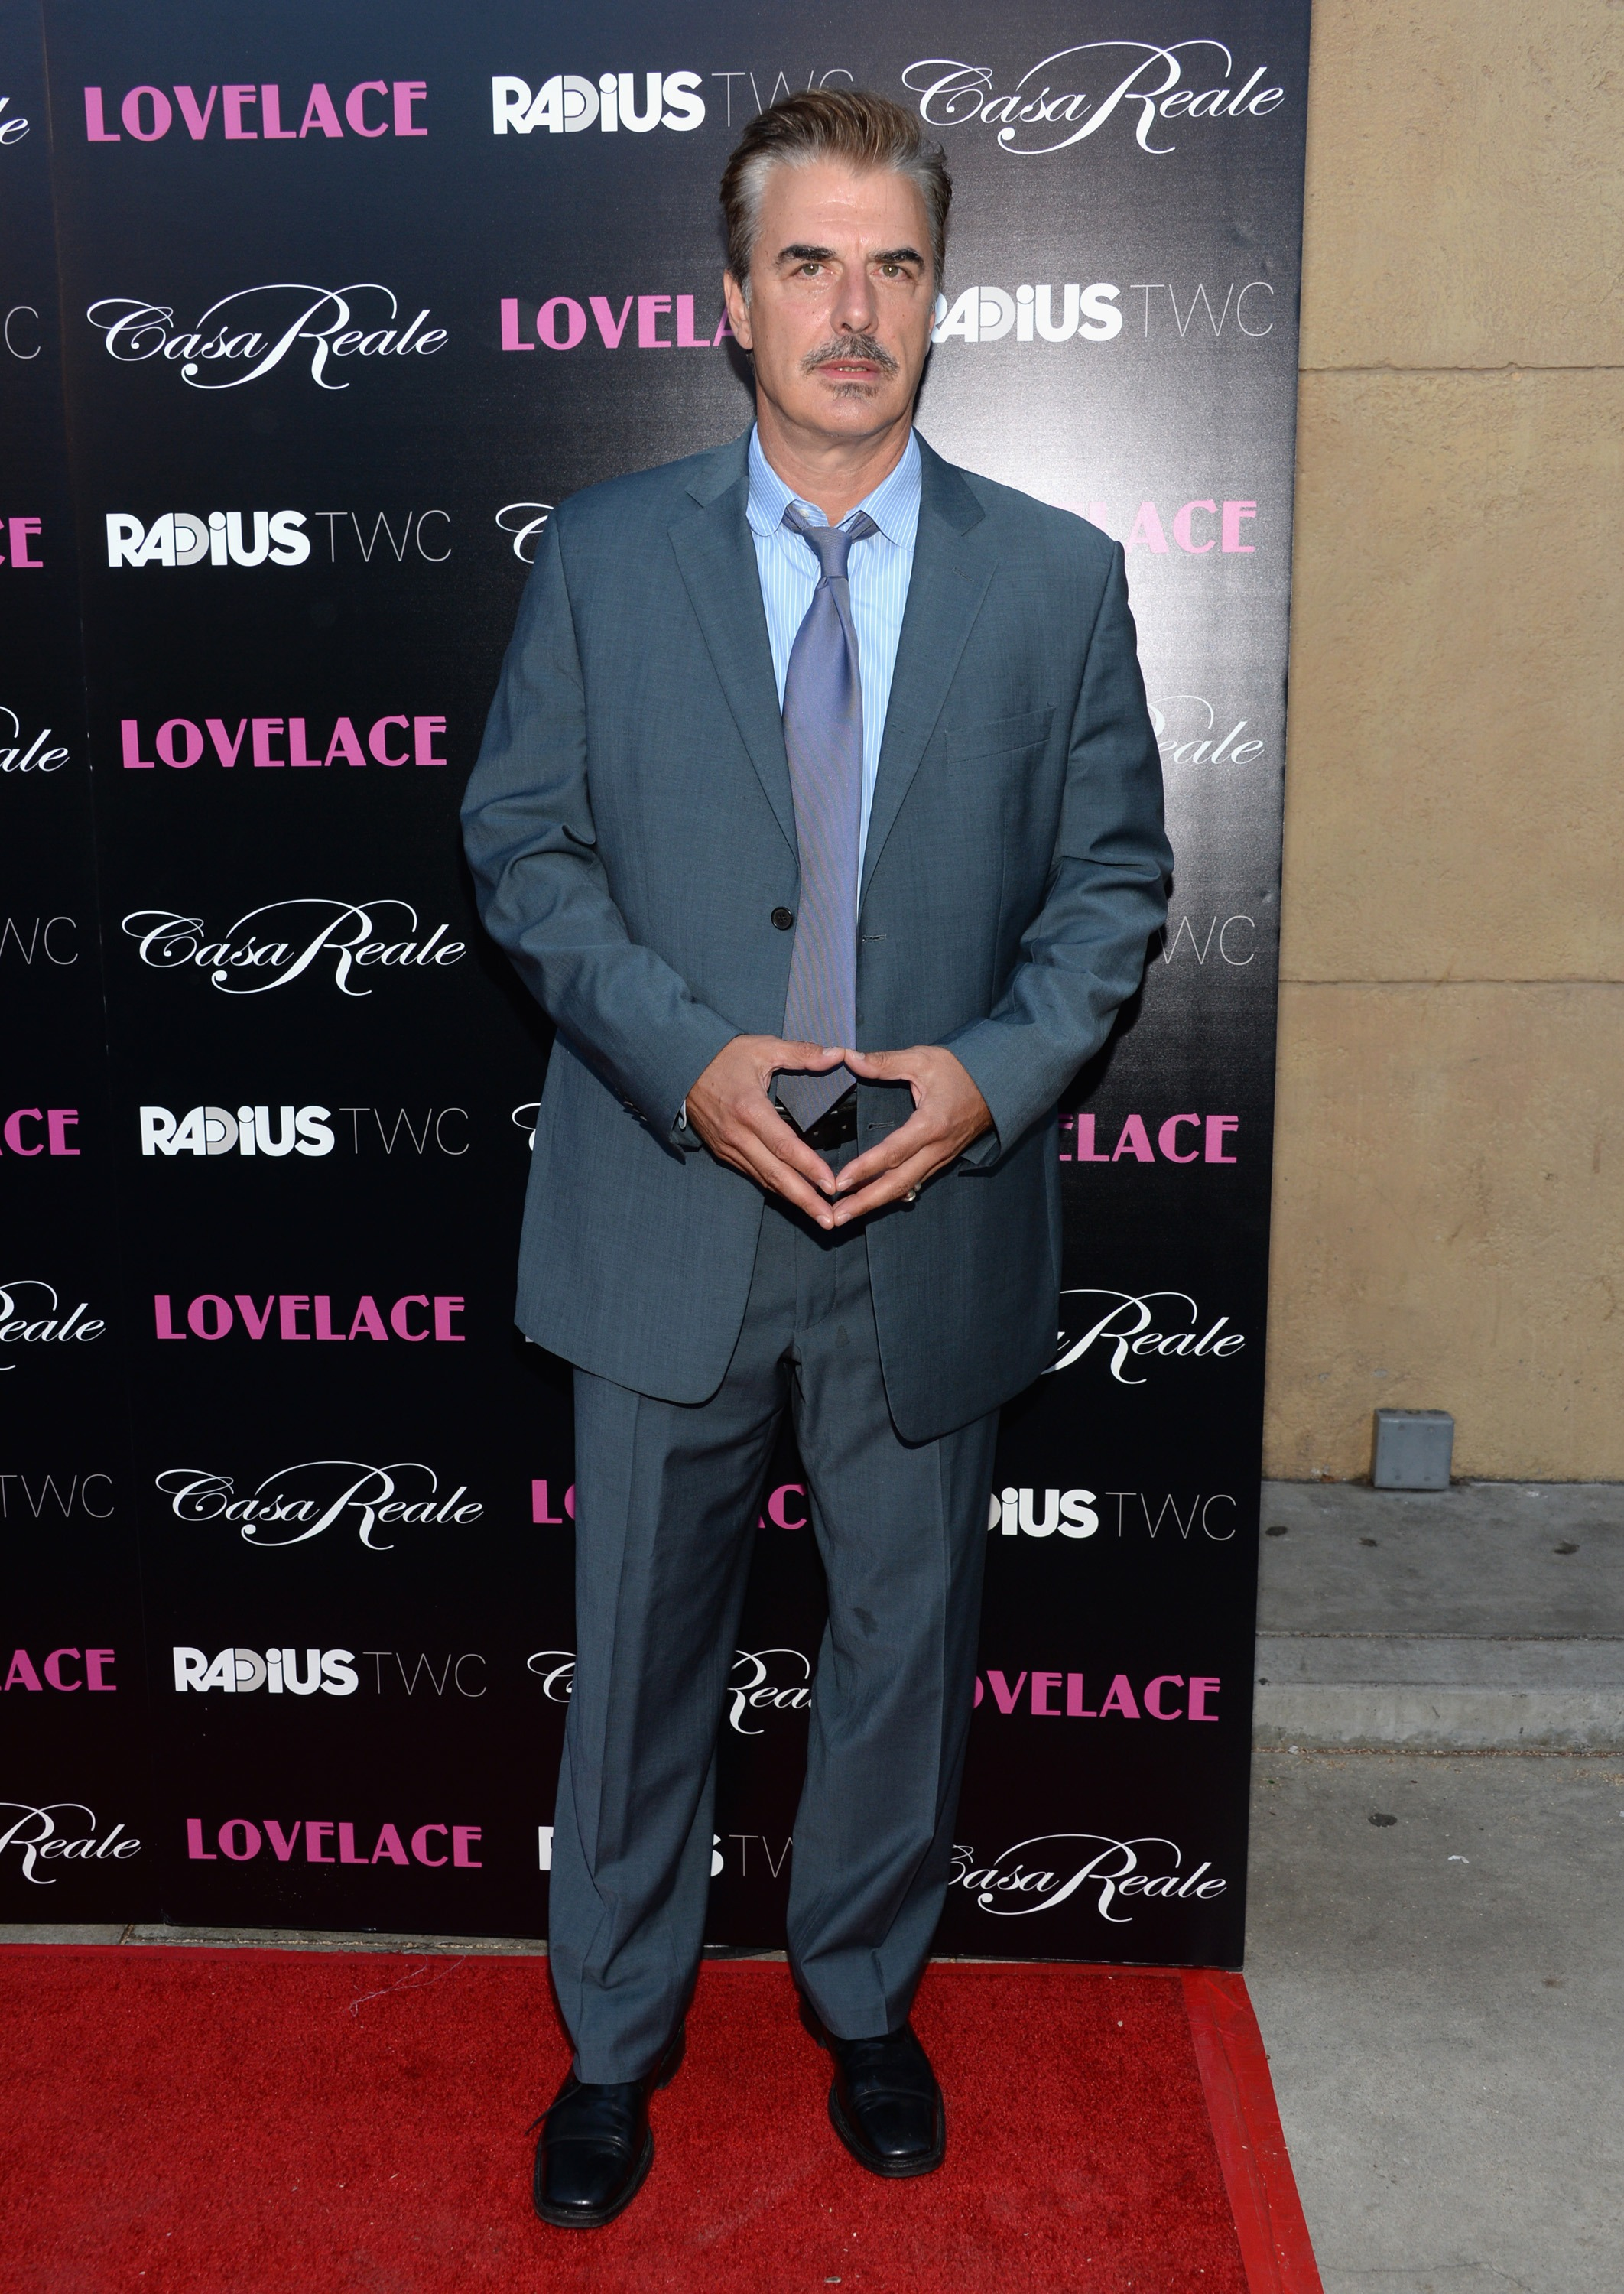 Adam Lambert, Amanda Seyfried, Chris Noth and more dazzle at the Lovelace premiere